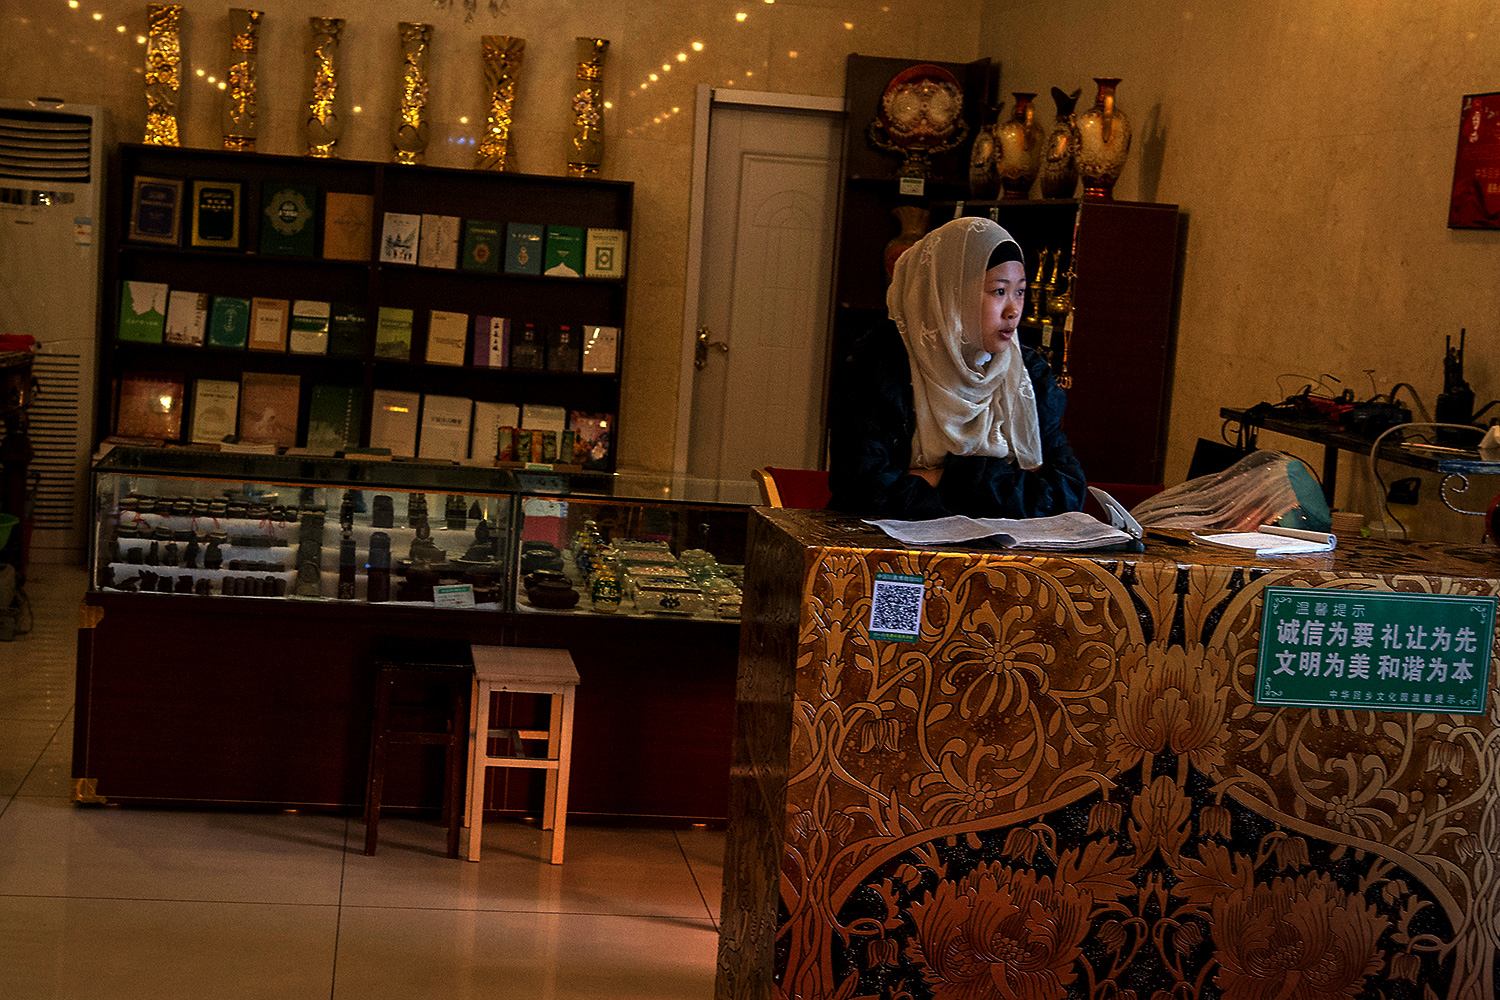 A receptionist inside the Aisha Palace waits to greet visitors. The palace serves as a temporary museum until construction of the main museum is complete.